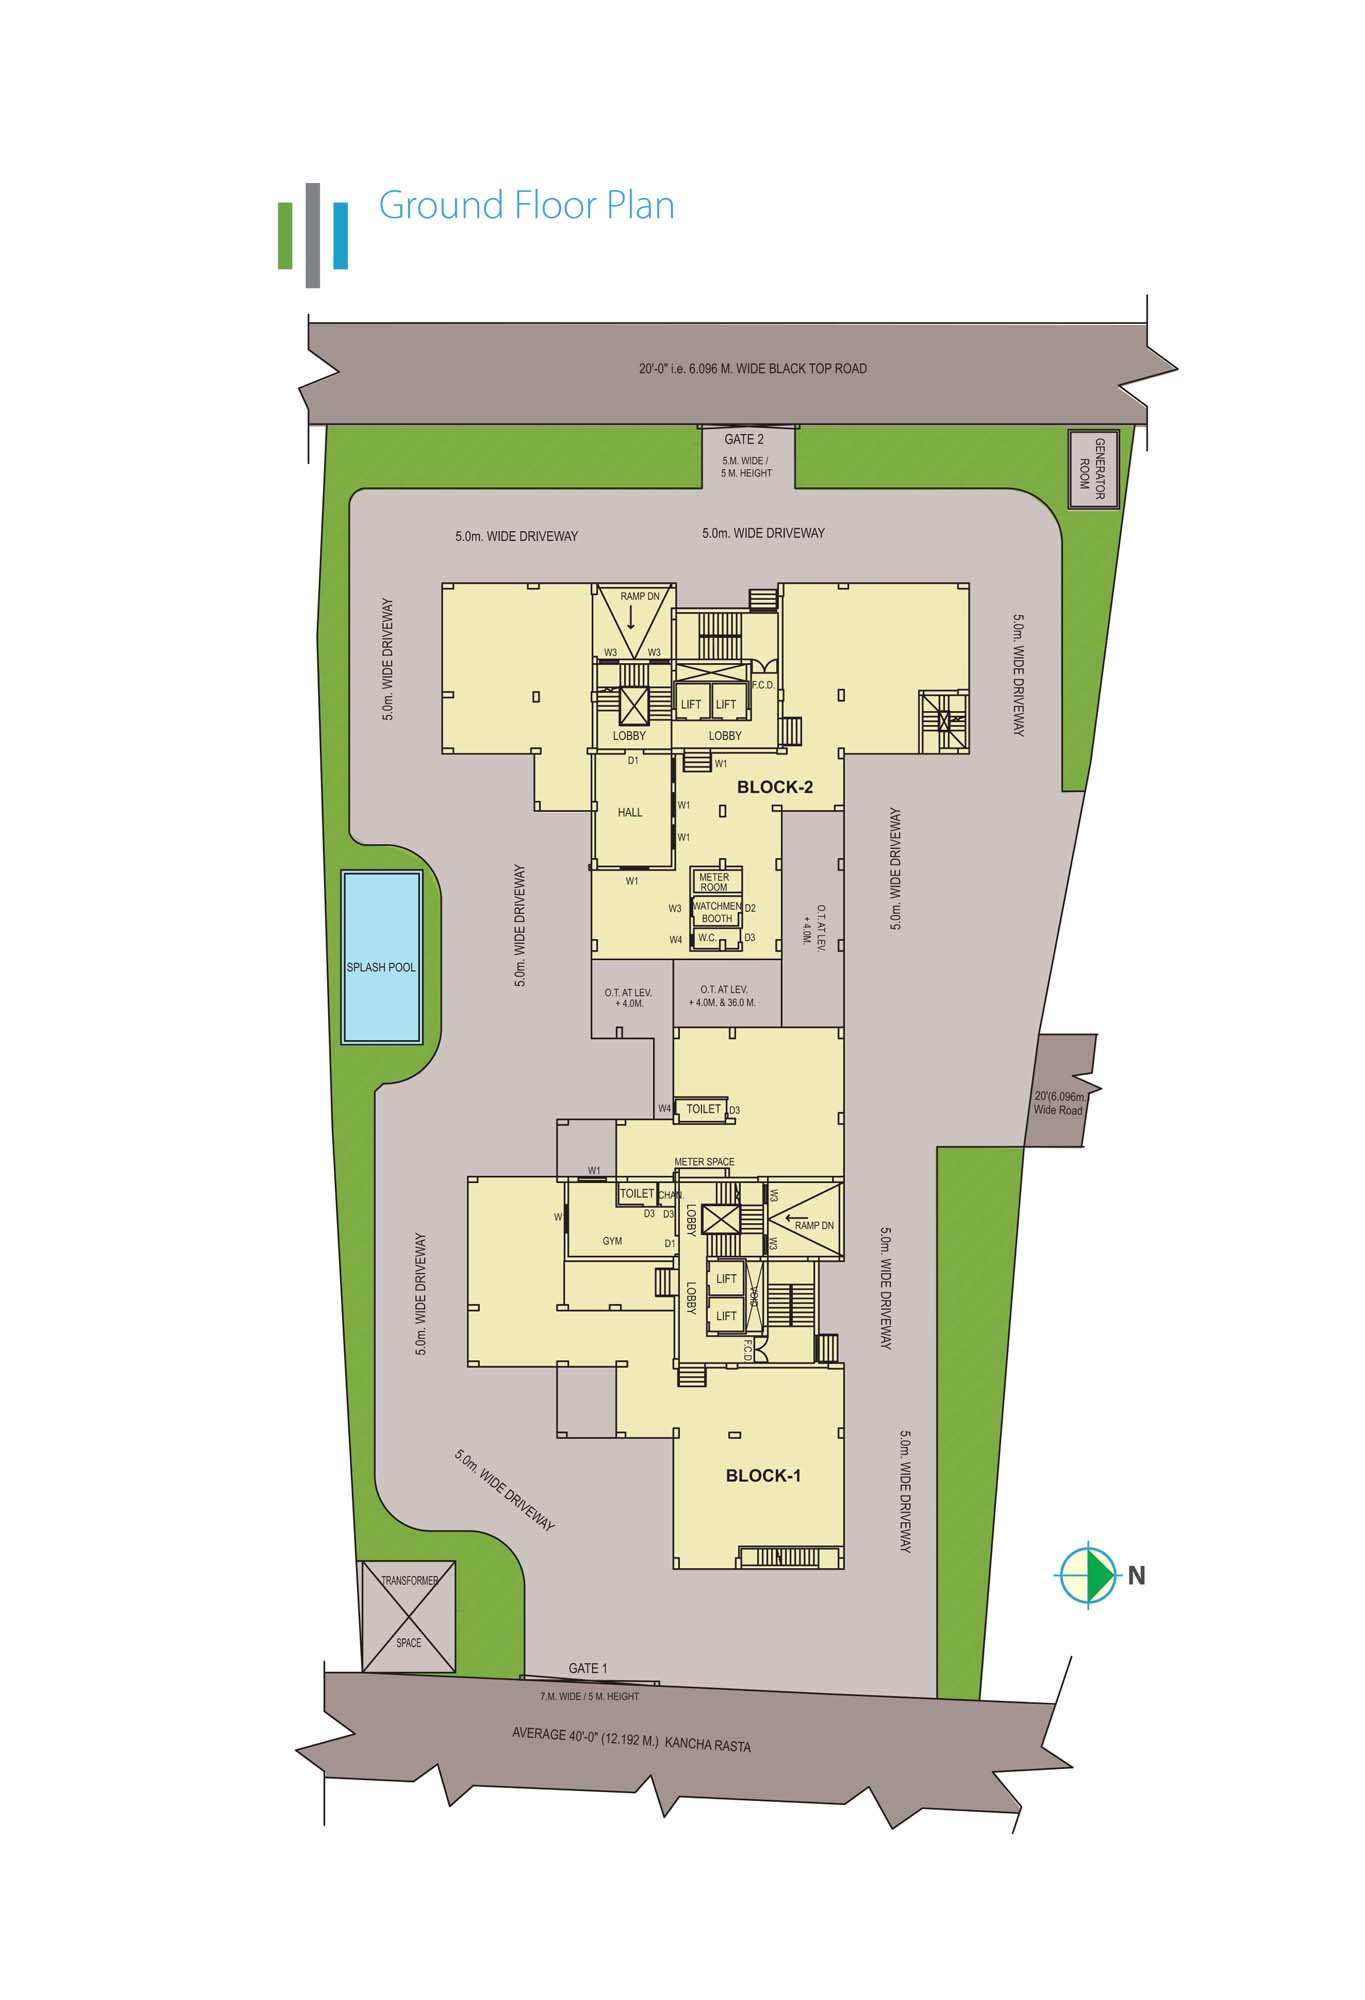 Eden Sky Terraces - Ground Floor Plan